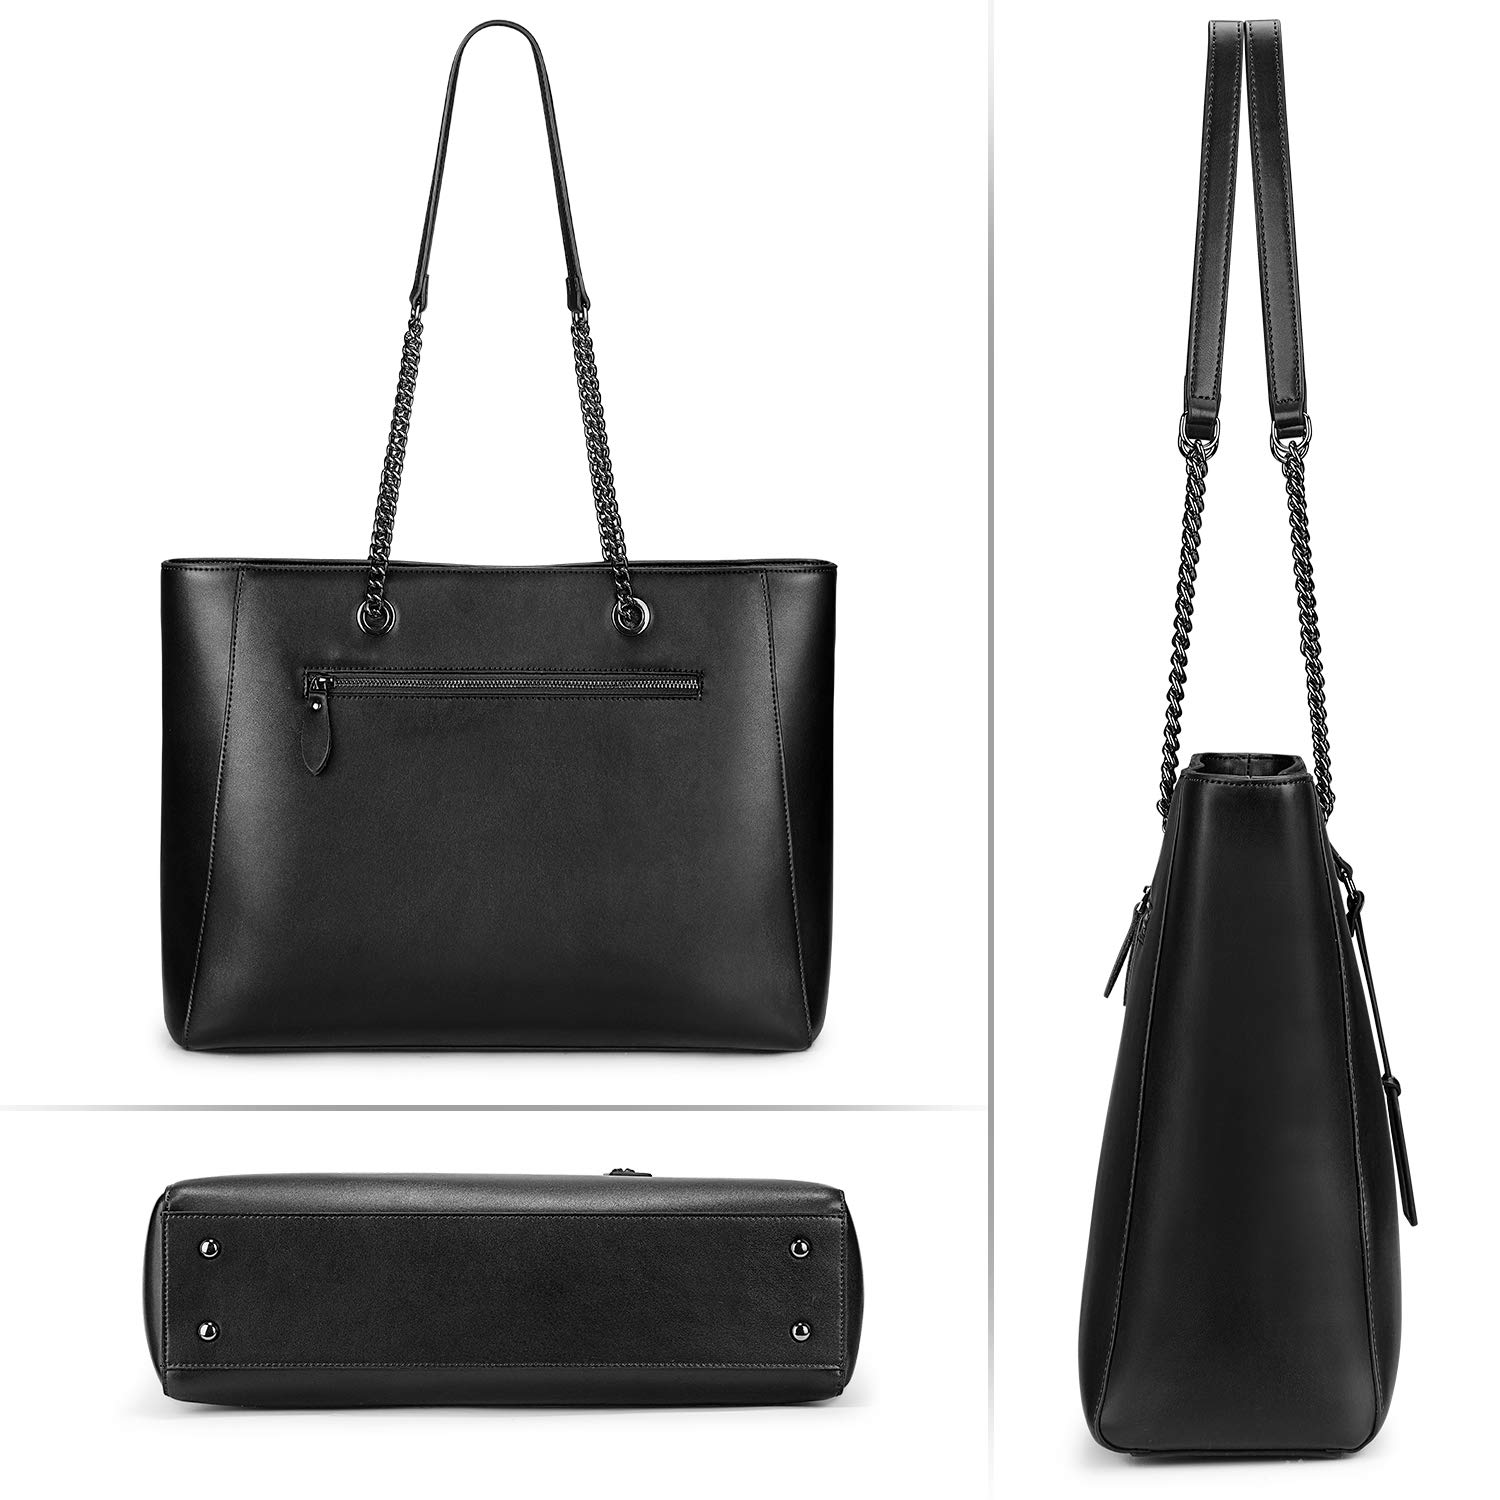 S-ZONE Women Leather Tote Bag Genuine Leather Shoulder Bag Fit Up to 15.6 in Laptop by S-ZONE (Image #4)